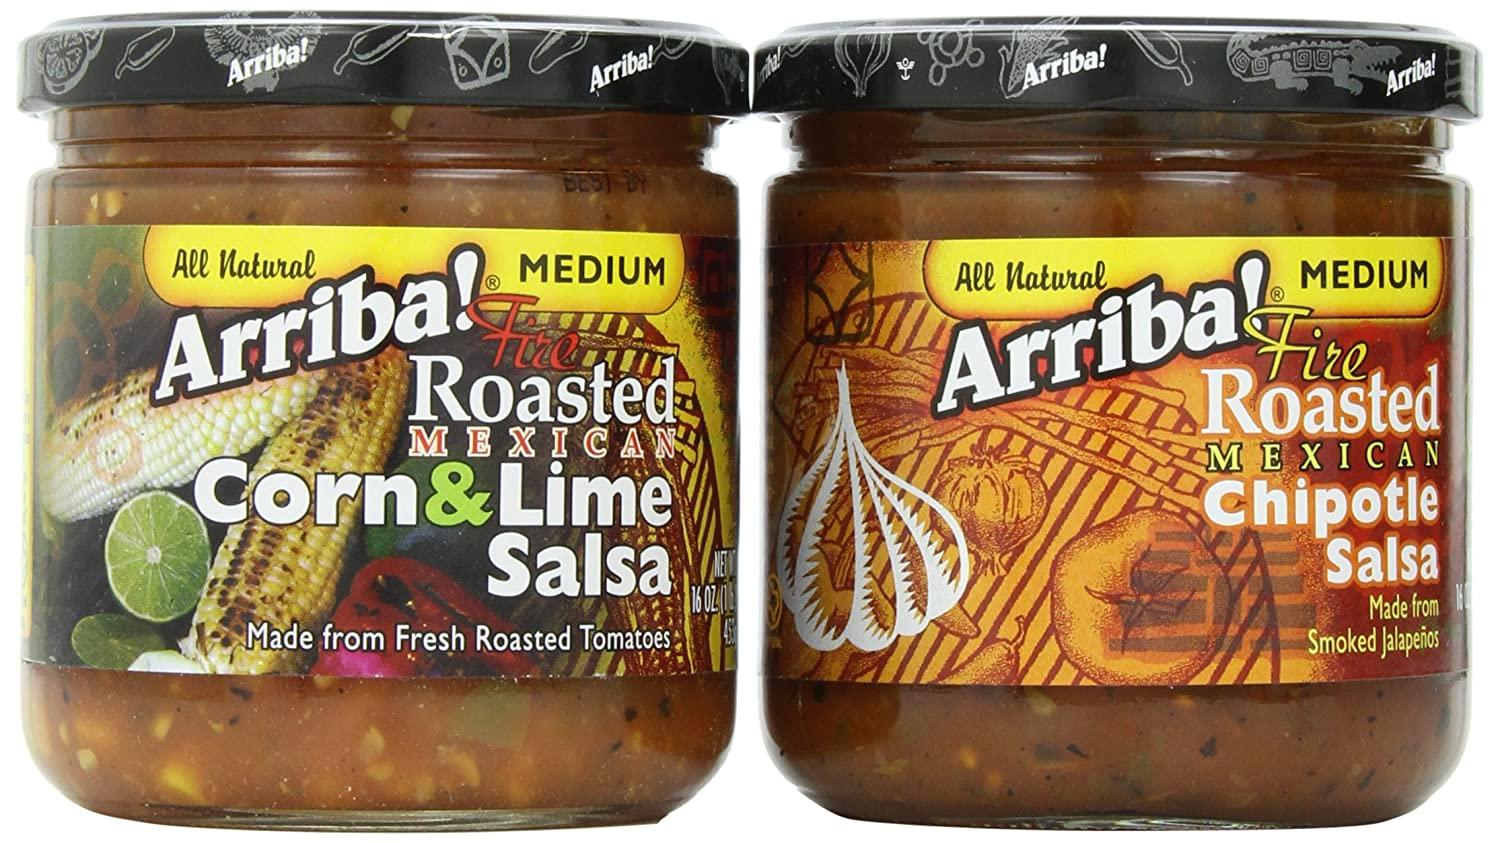 Amazon.com: Arriba! Chipotle Salsa and Corn & Lime Salsa Combo Pack, 16 Ounce Jars (Pack of 4)